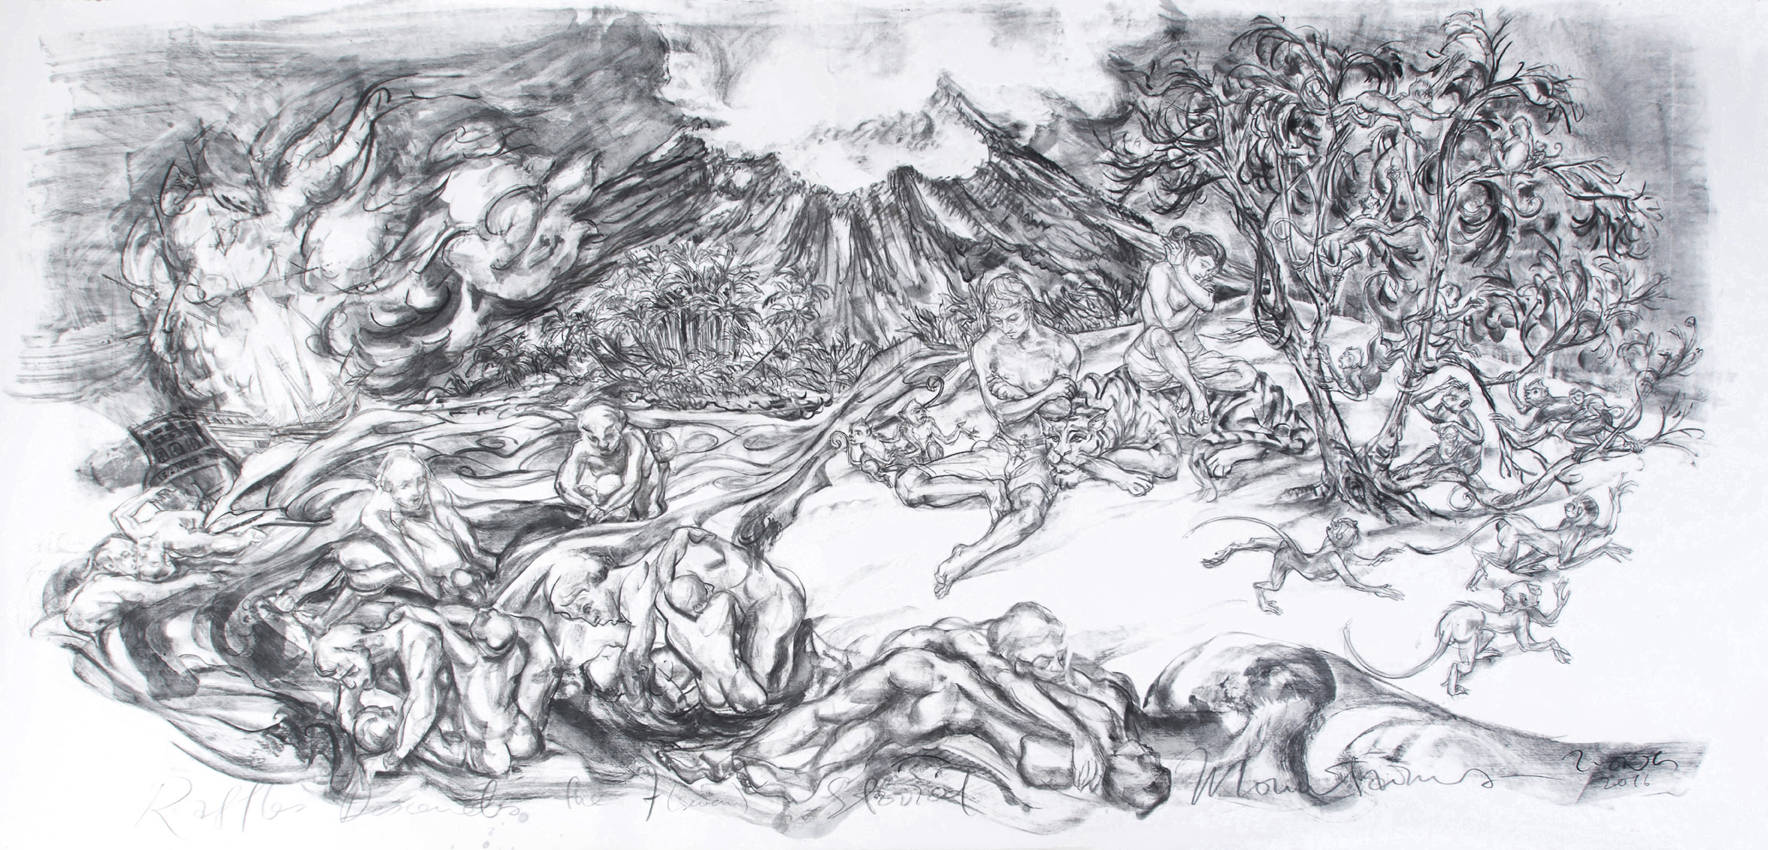 Jimmy ONG  Raffles Descends The Seven Storey Mountain (  莱佛士回首苍生)  2016 Charcoal on paper H128 x W259 cm